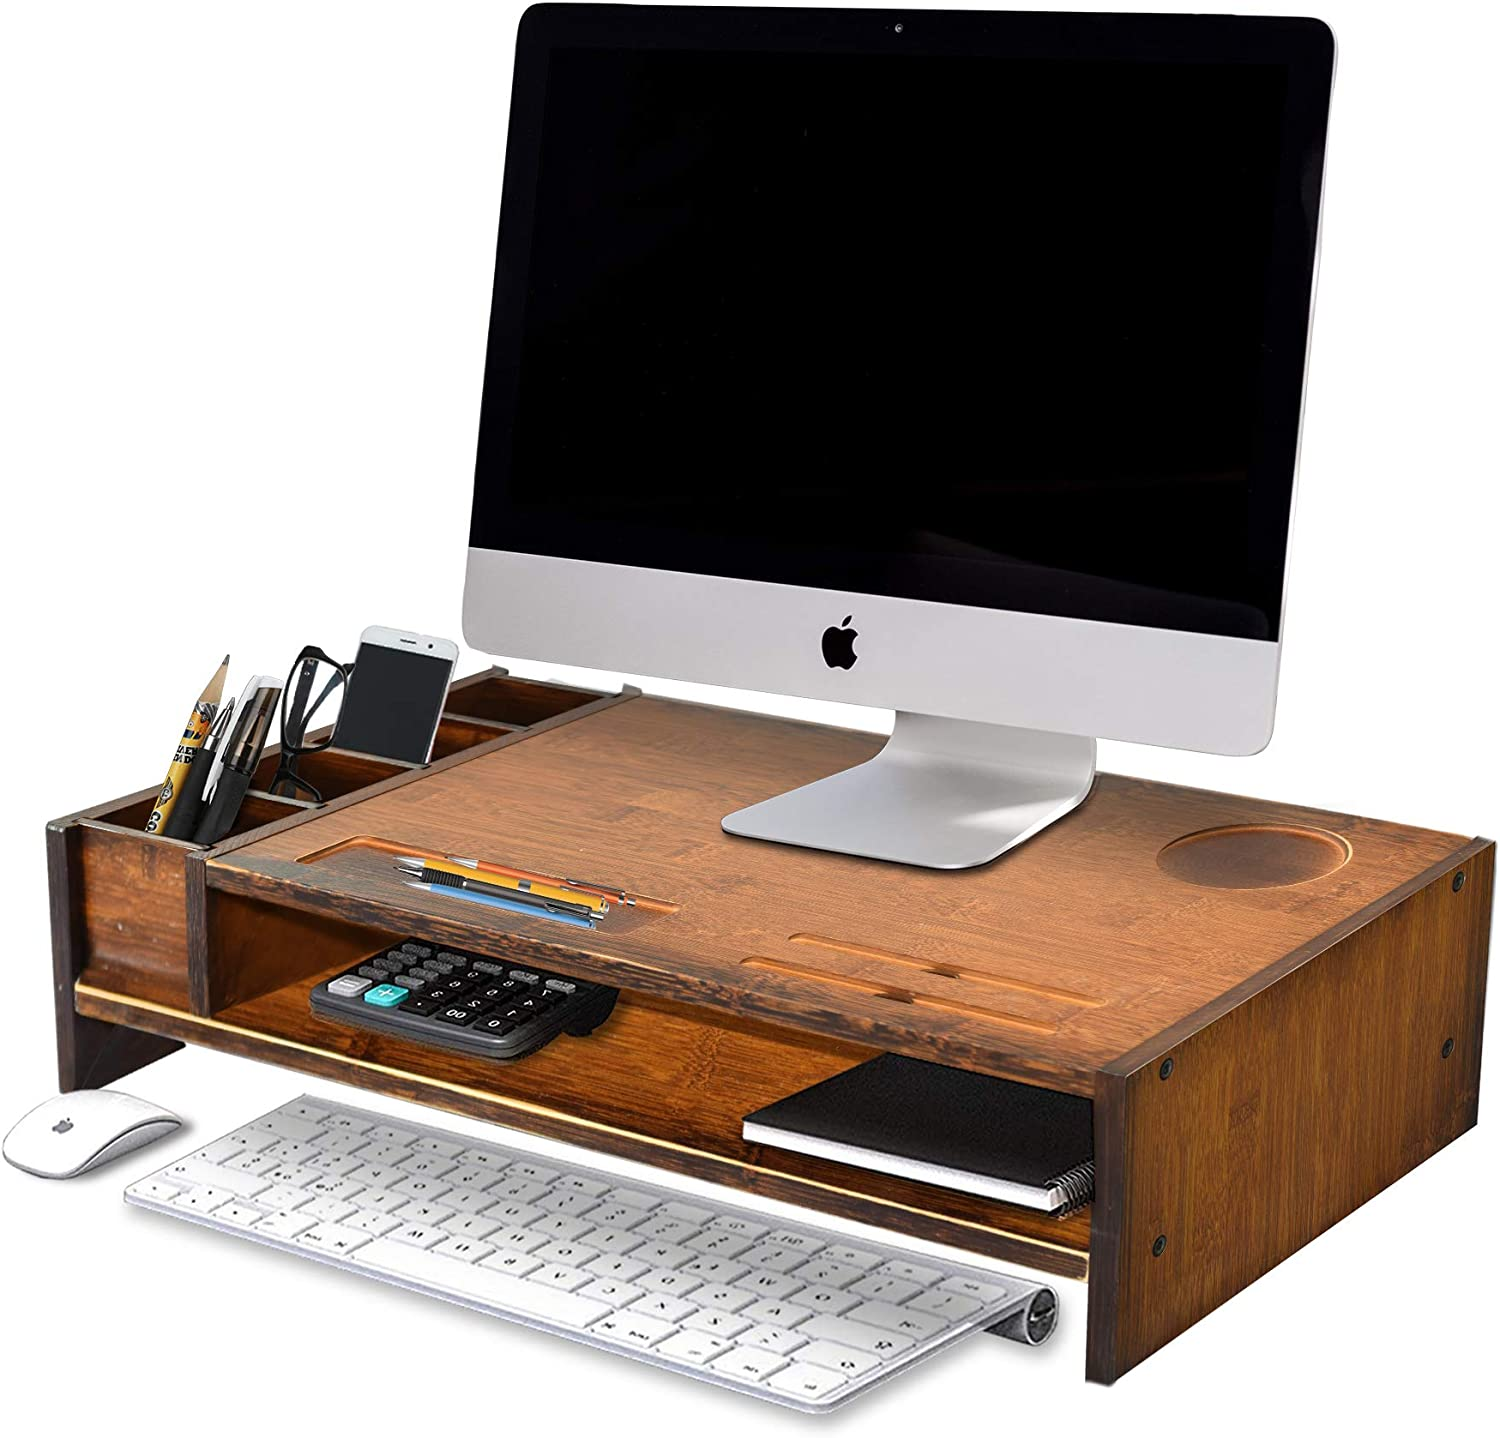 WAYTRIM 2-Tier Bamboo Monitor Stand, Wood Computer Monitor Riser, Wooden Desk Organizers with Adjustable Storage Accessories Shelf for iMac, Laptop, Printer - Classic Antique Brown